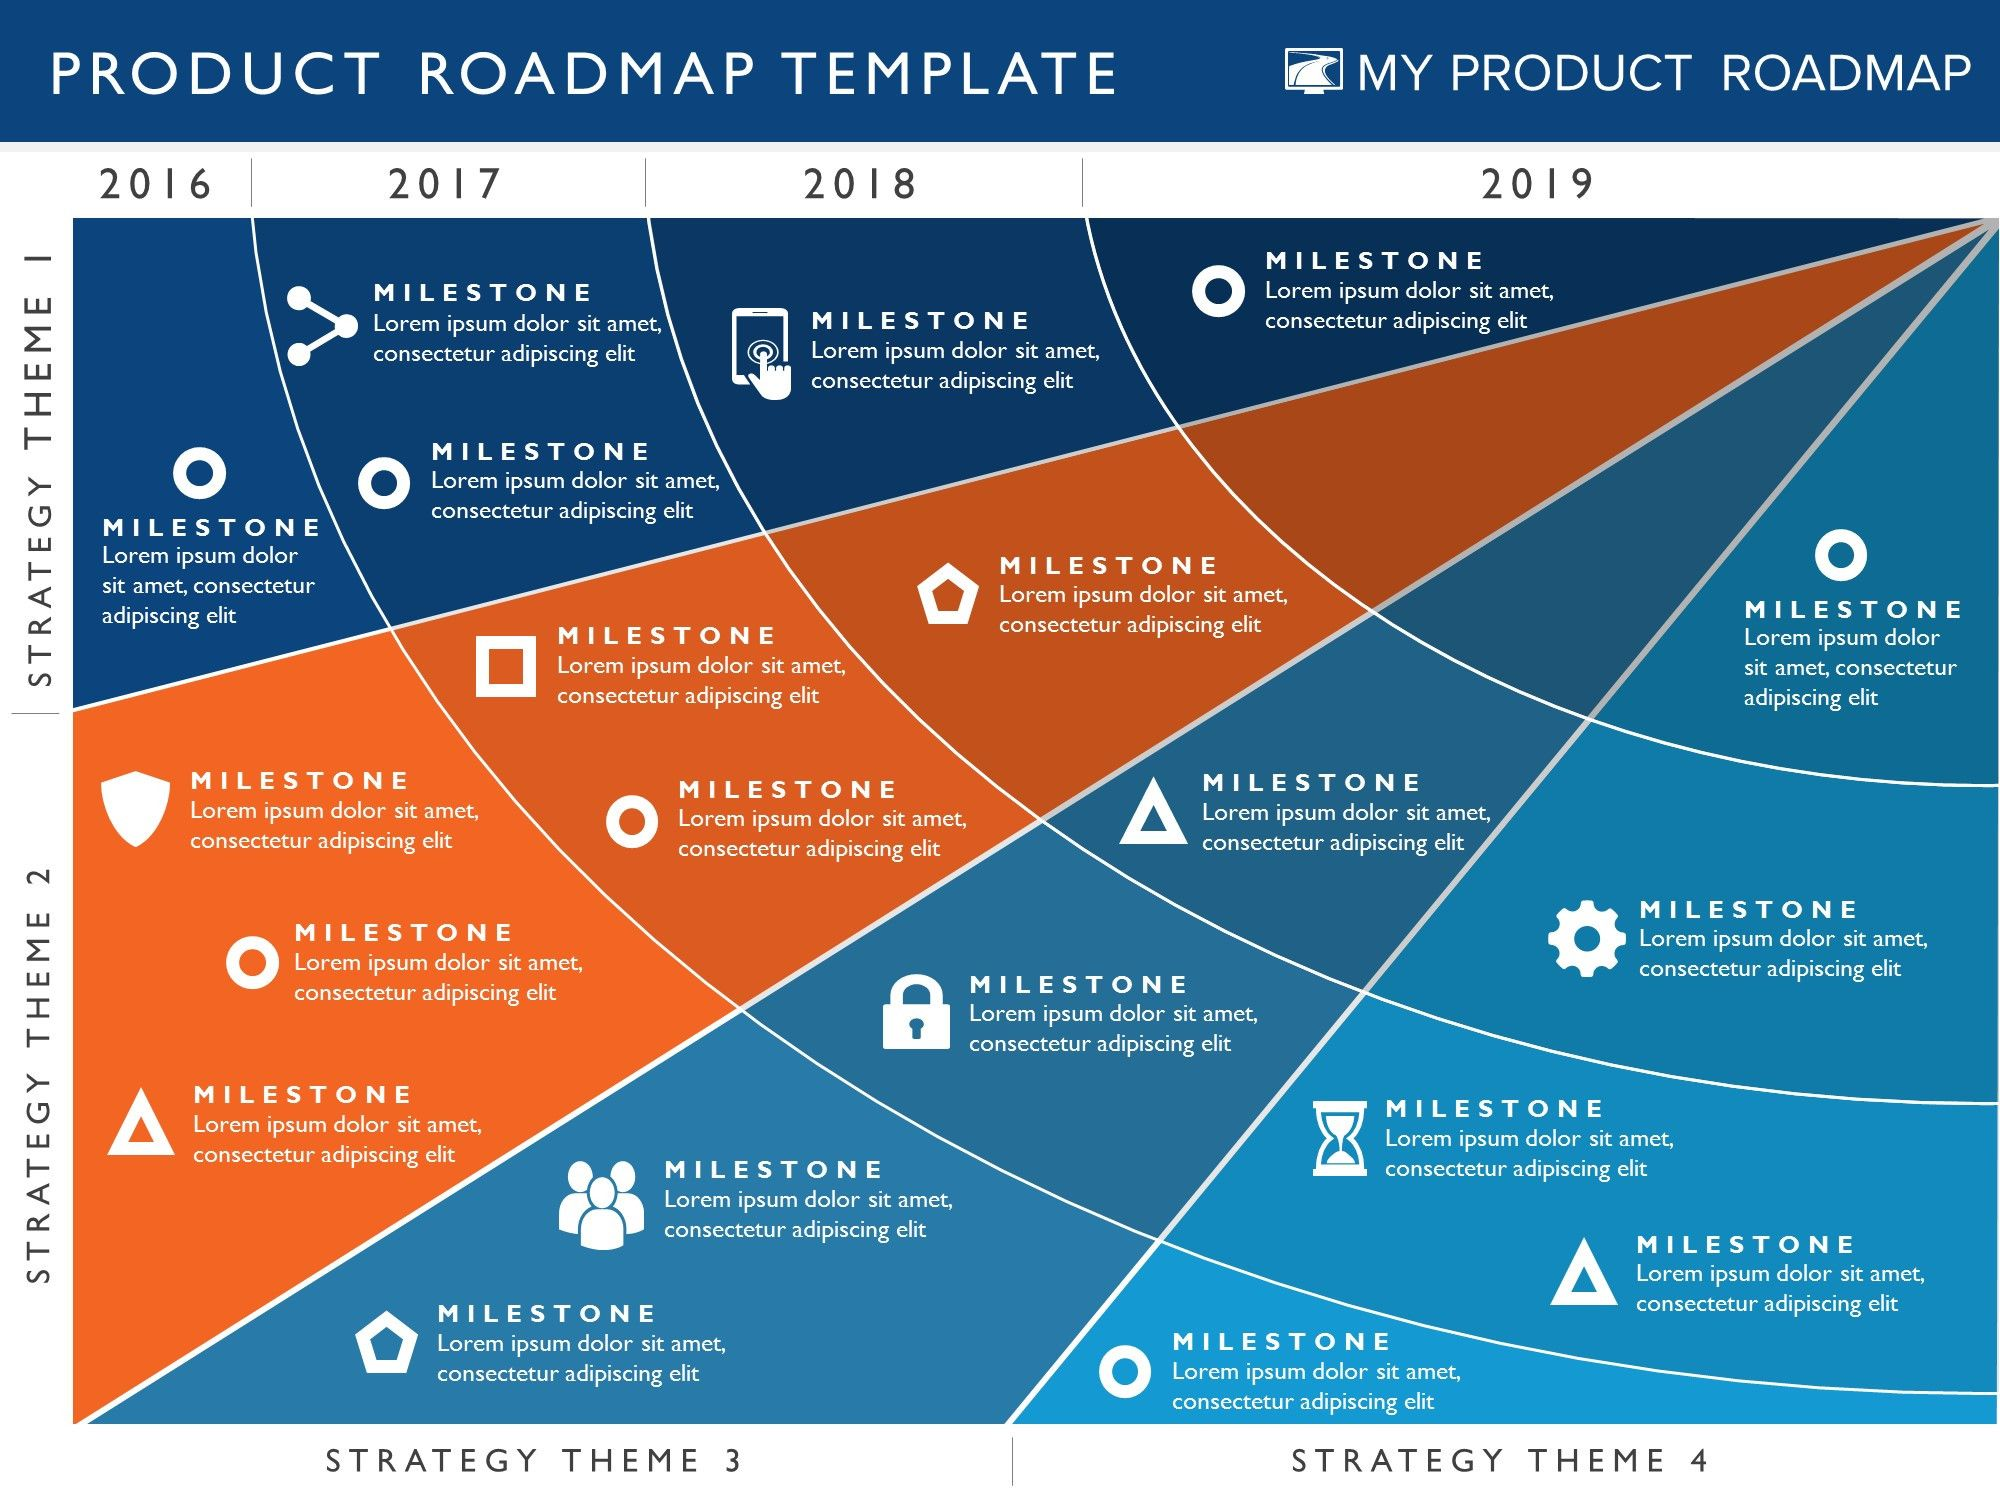 What is a product roadmap template?